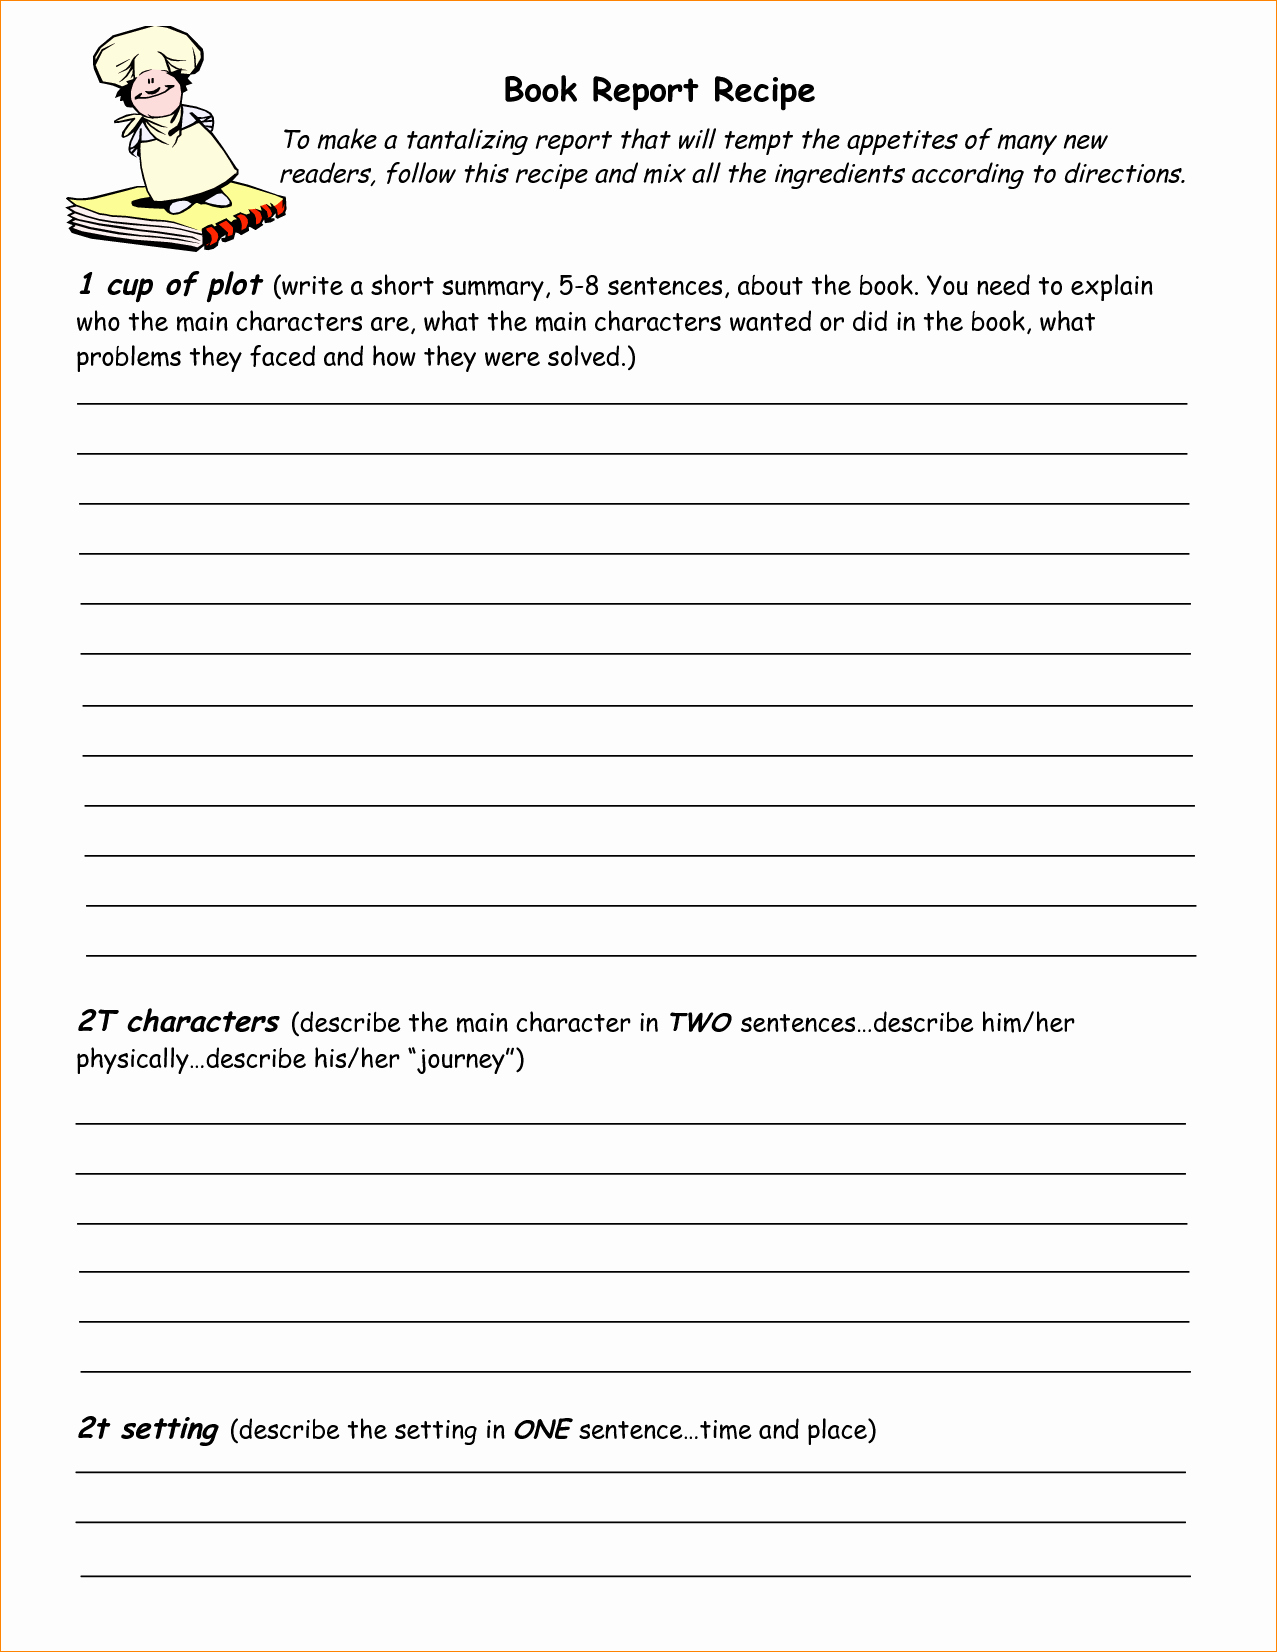 Free Recipe Book Template Lovely Free Book Report Templates Bamboodownunder